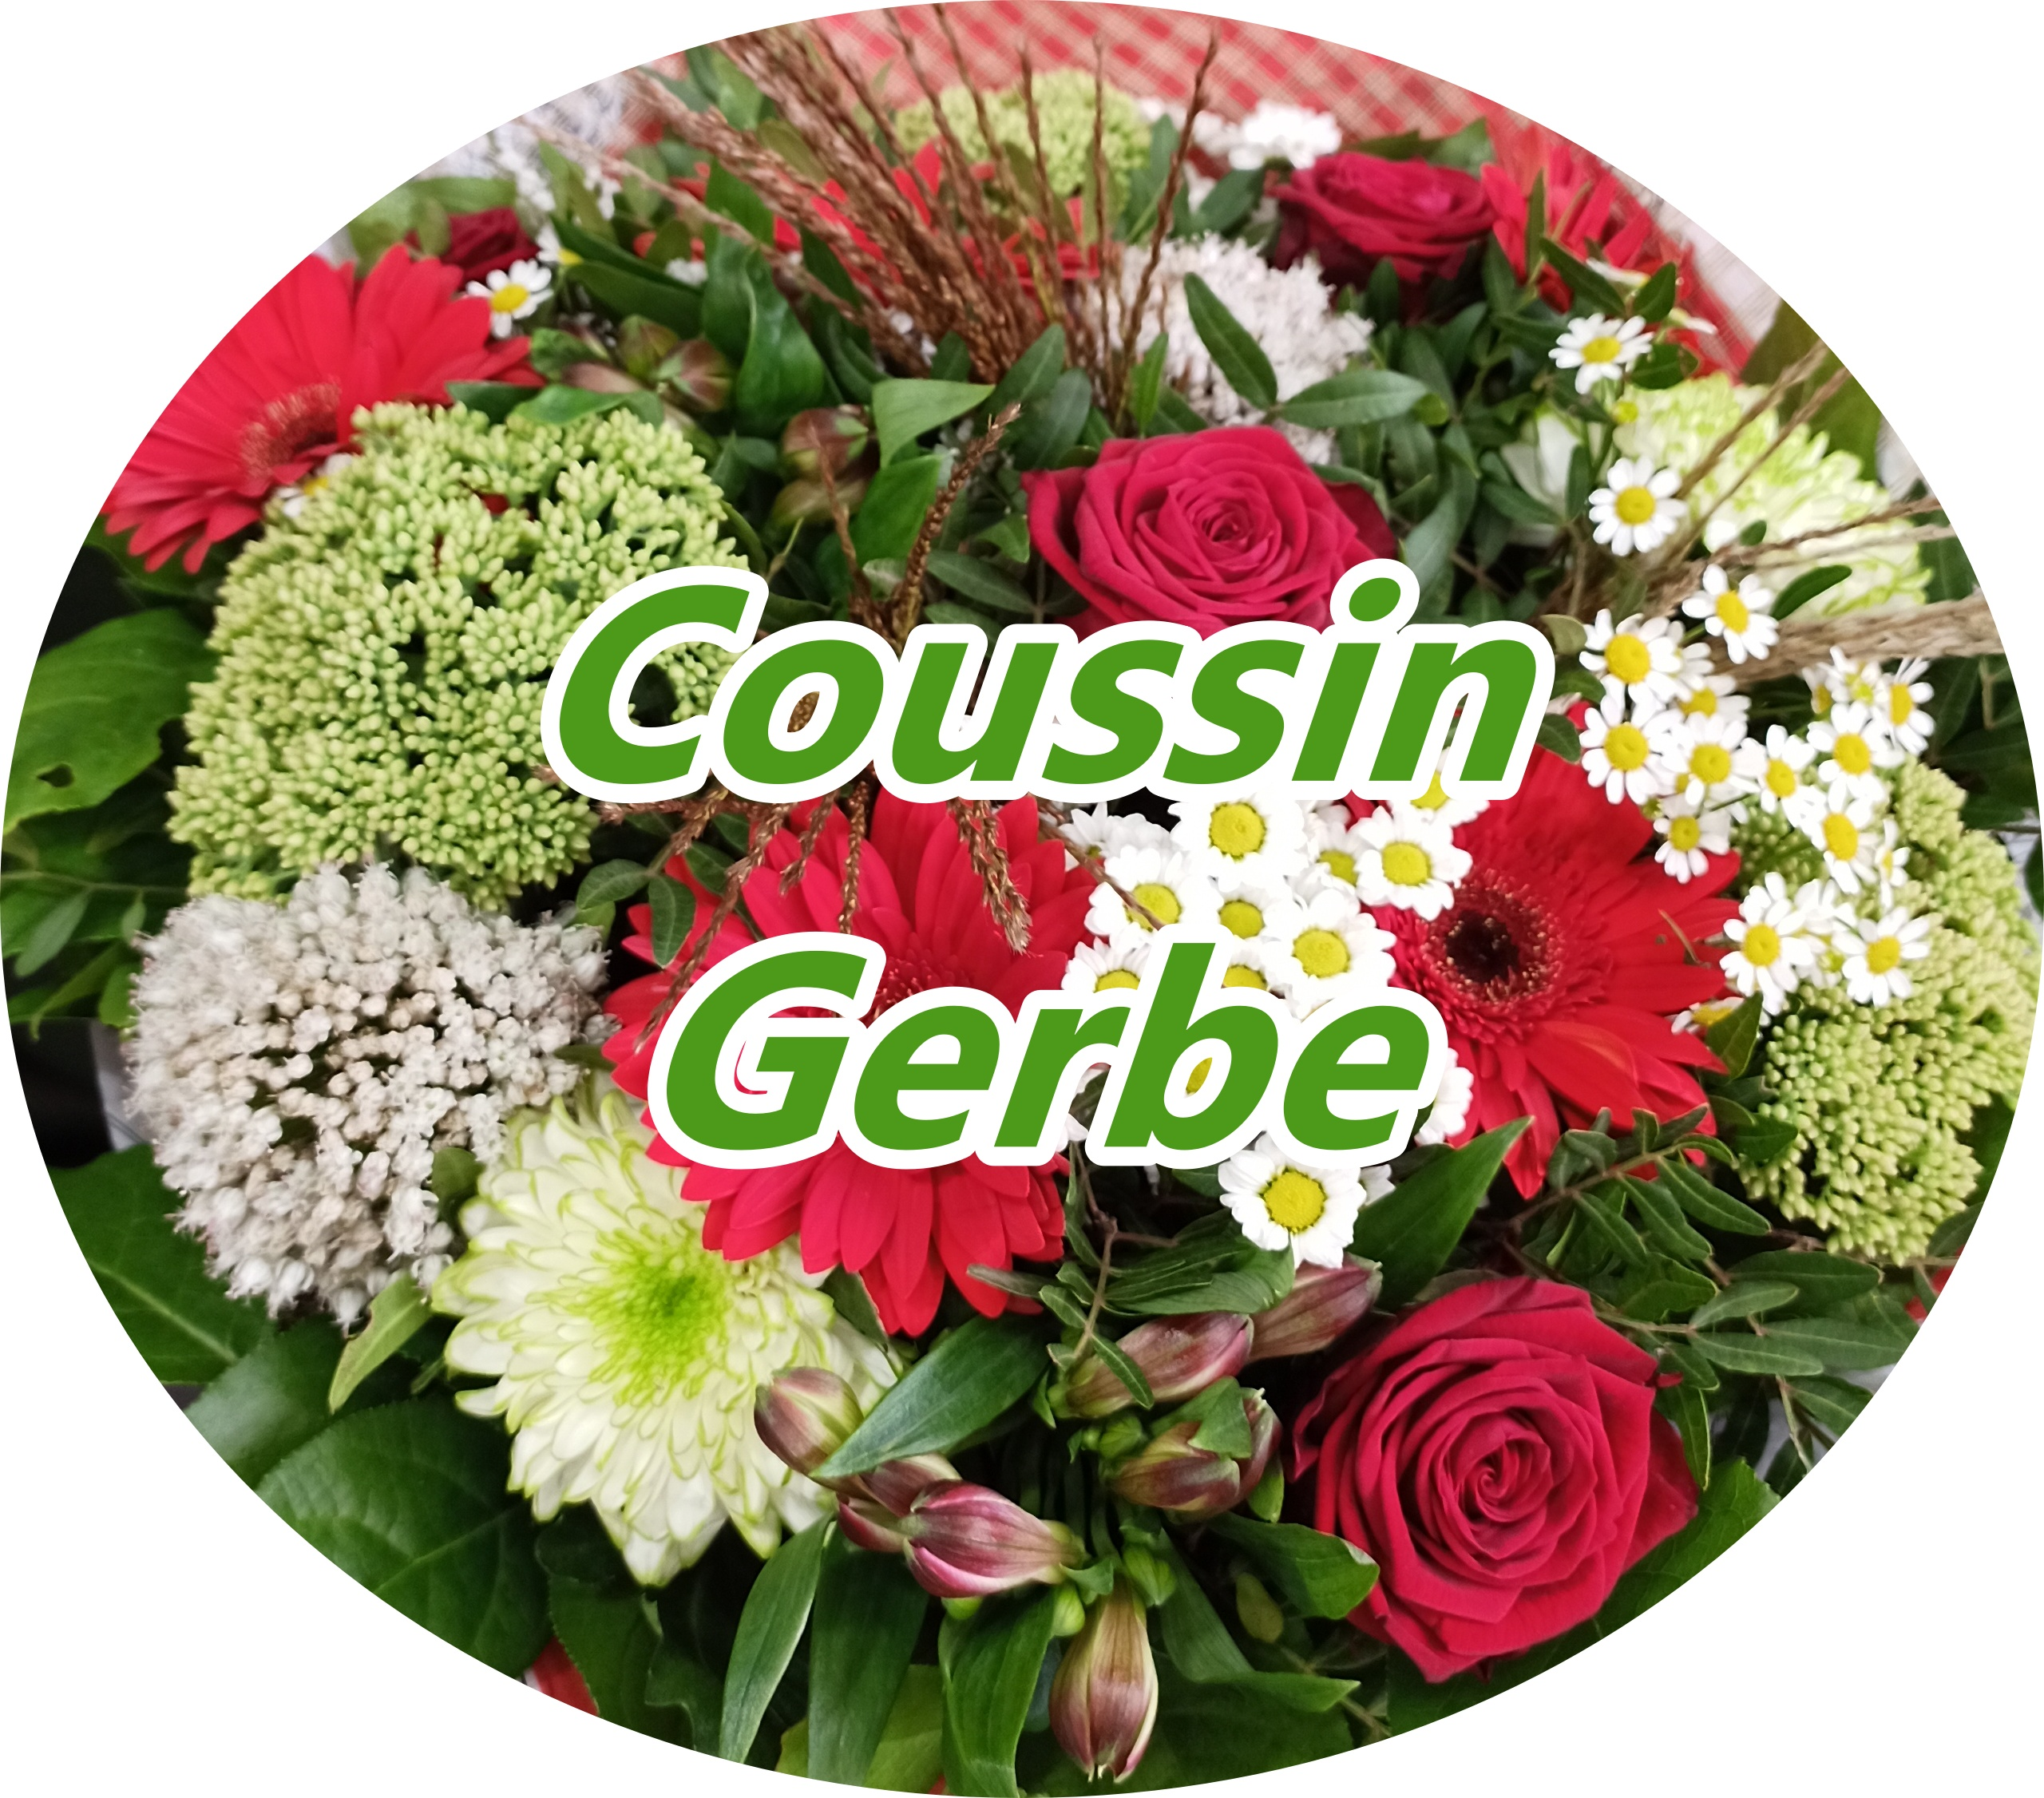 Coussin, Gerbe,